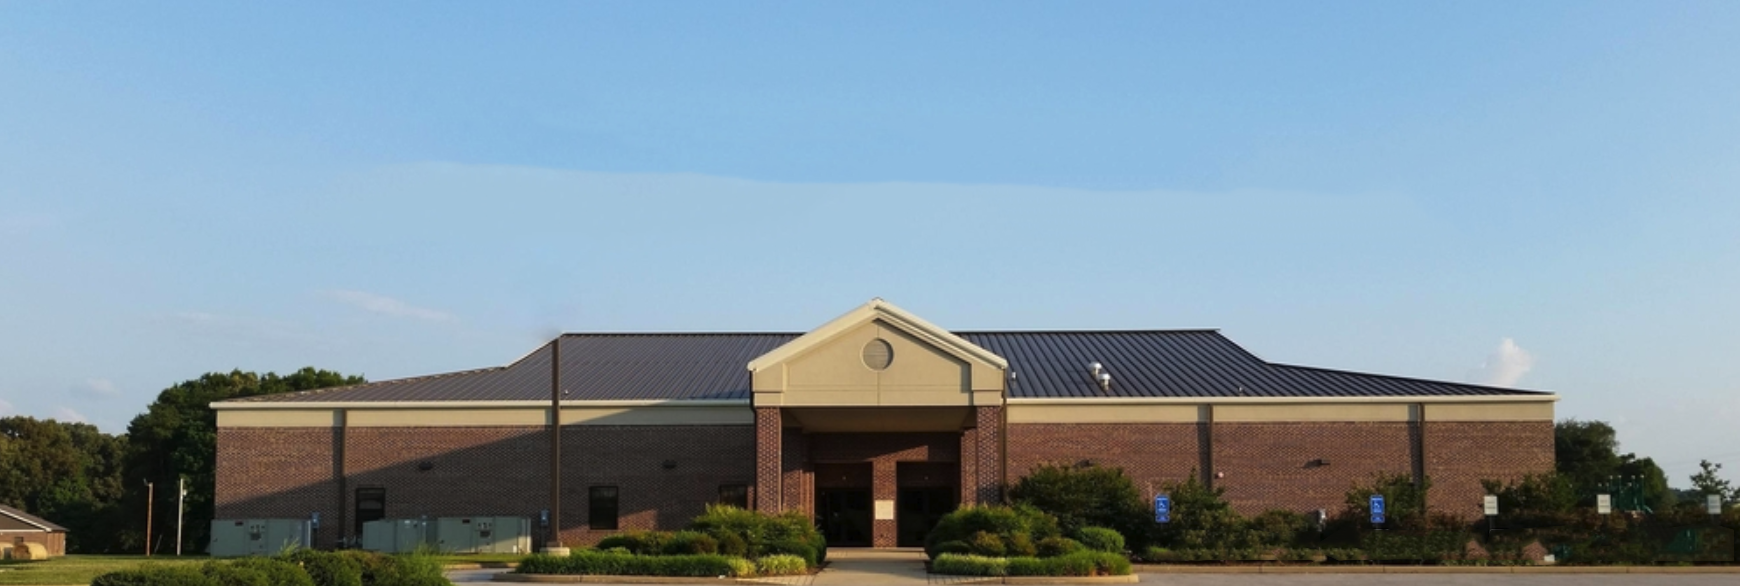 Why are you starting a Christian school in Weakley County?